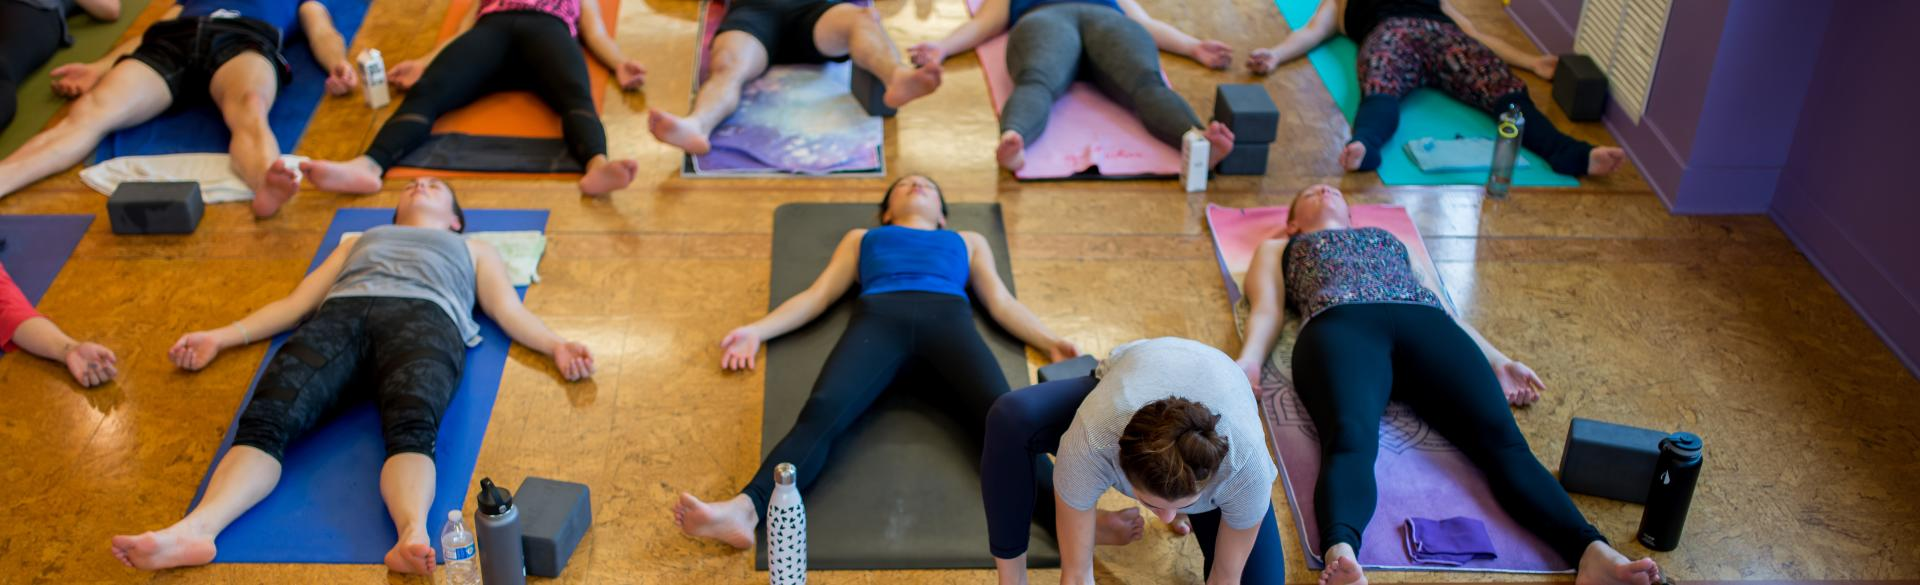 Fact: Funky Buddha Yoga Hothouse classes are taught in 95-degree studios.